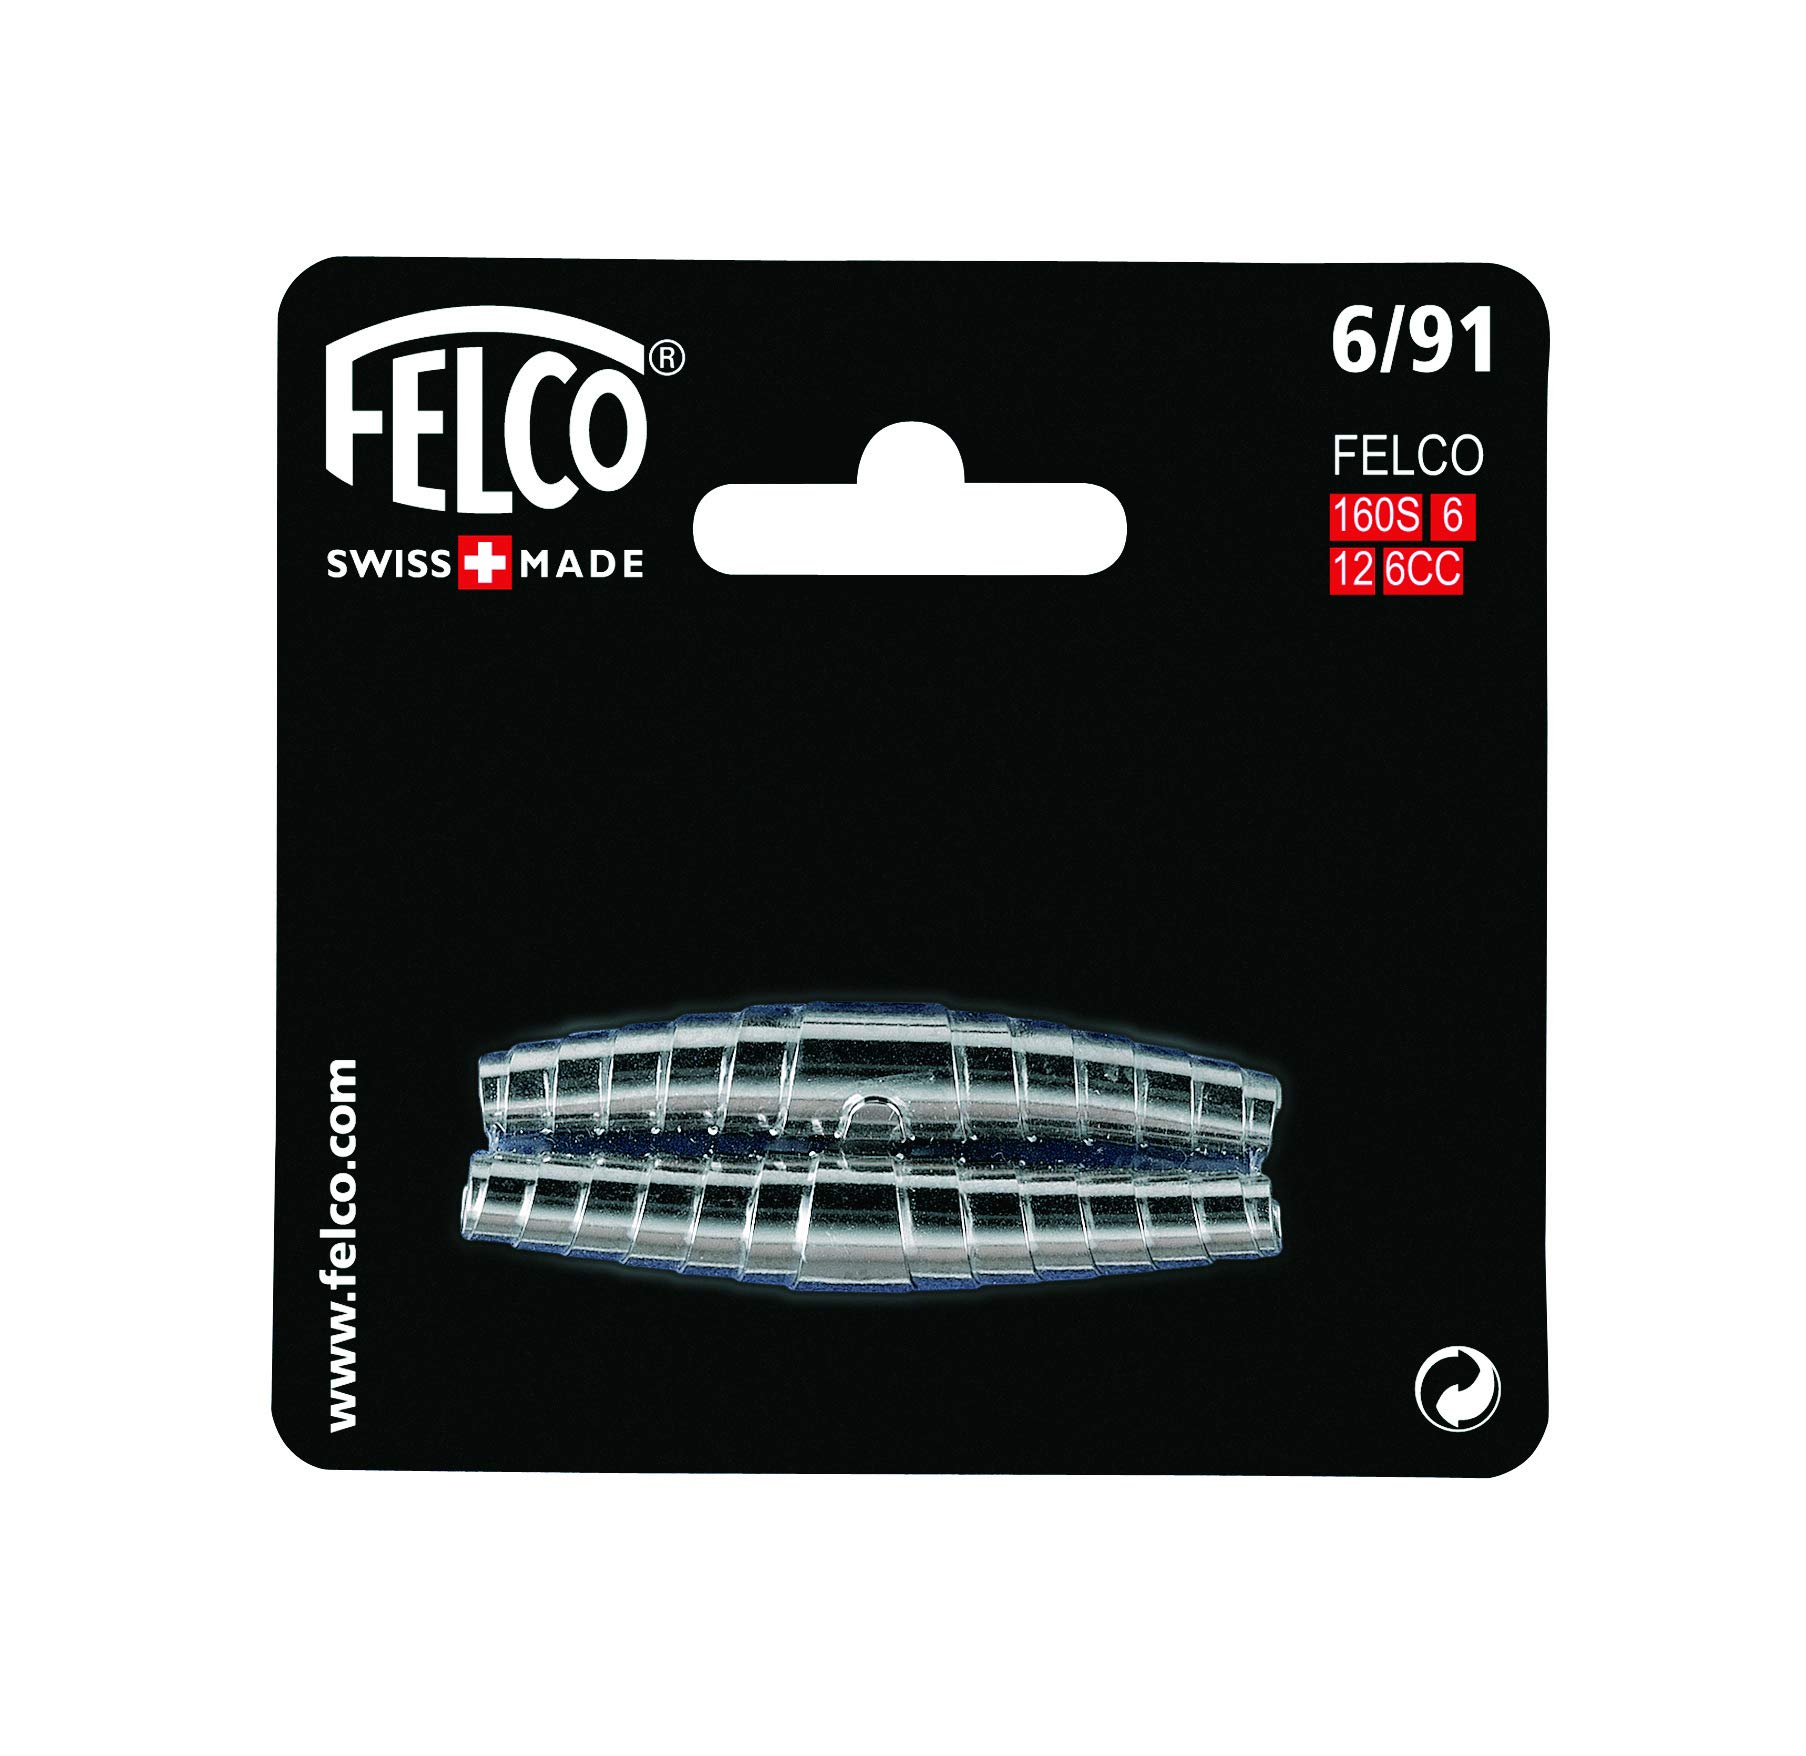 Felco Pruner Replacement Springs (6/91) - Spare Nickel Plated Spring for Gardening Shears, Scissors, & Clippers (2-Pack) - 33390